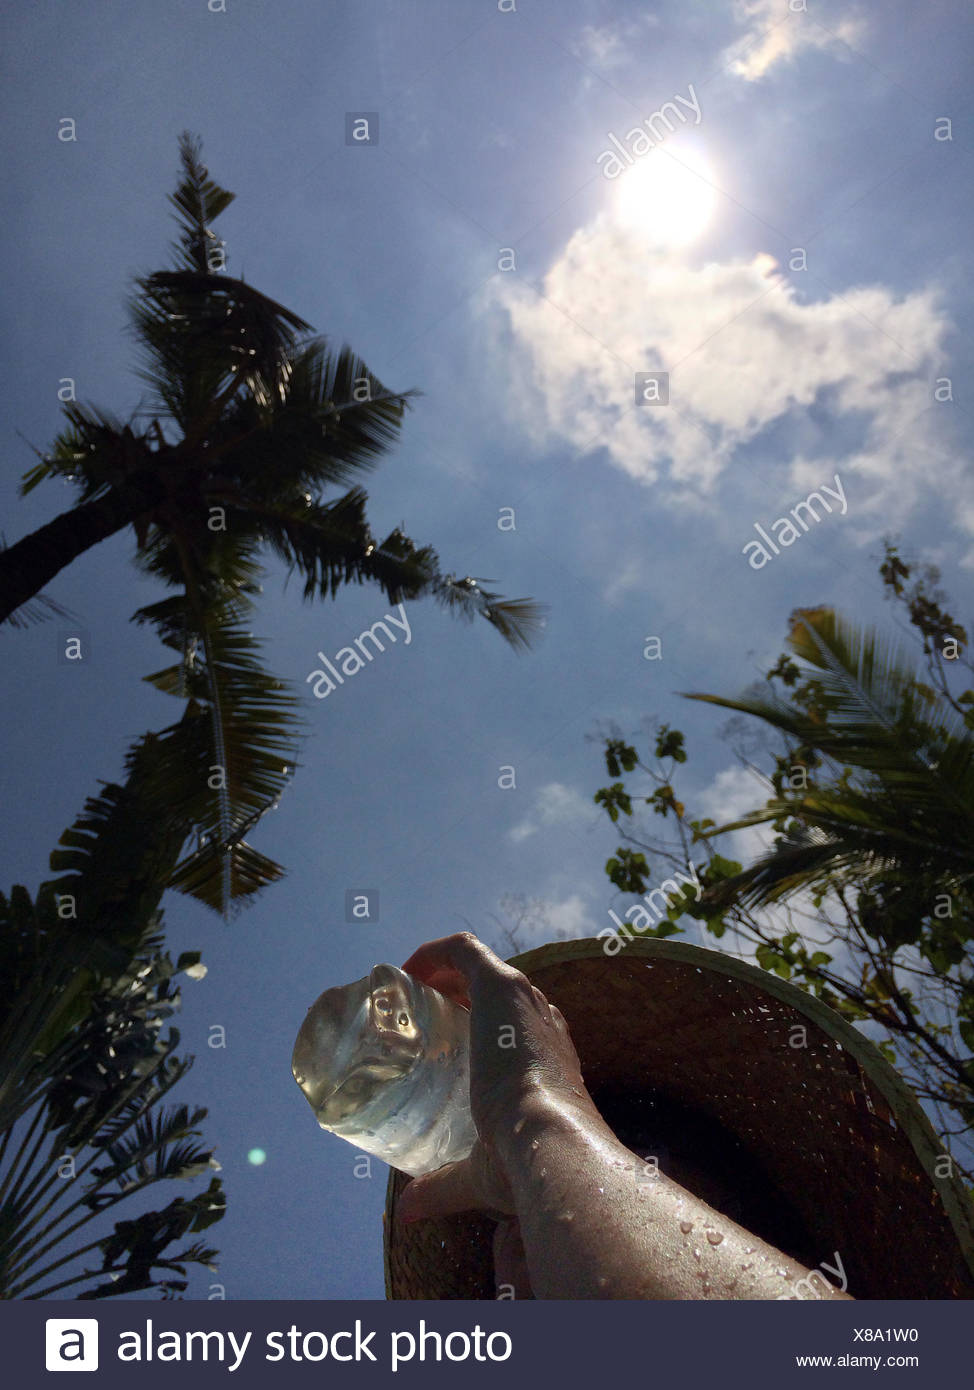 Woman drinking water in hot weather - Stock Image